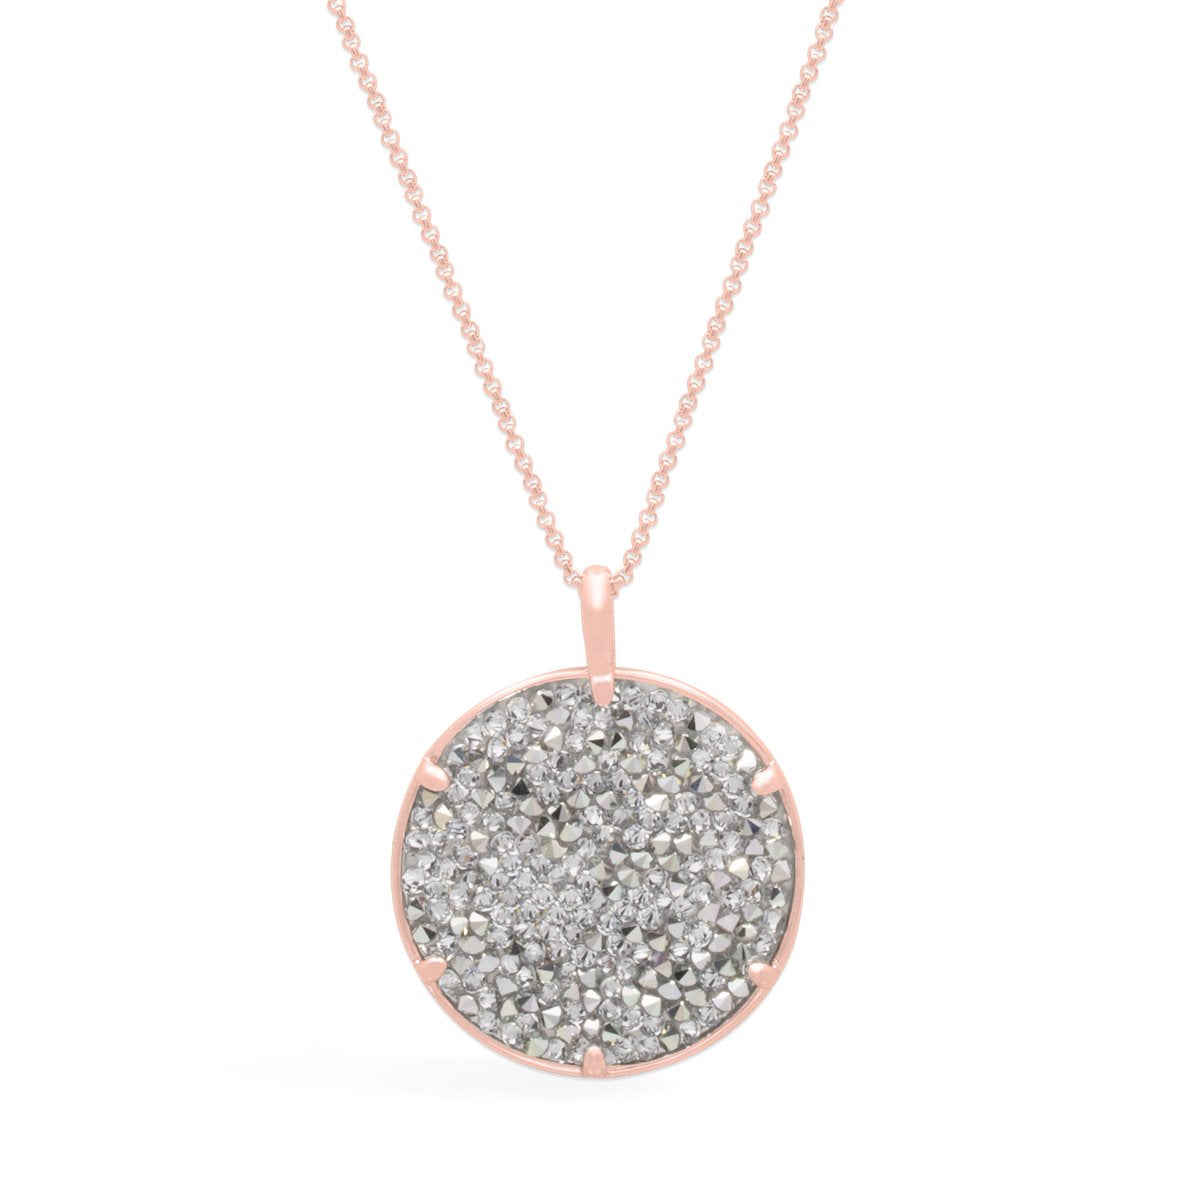 Ara Medallion Necklace forevercrystals Rose Gold